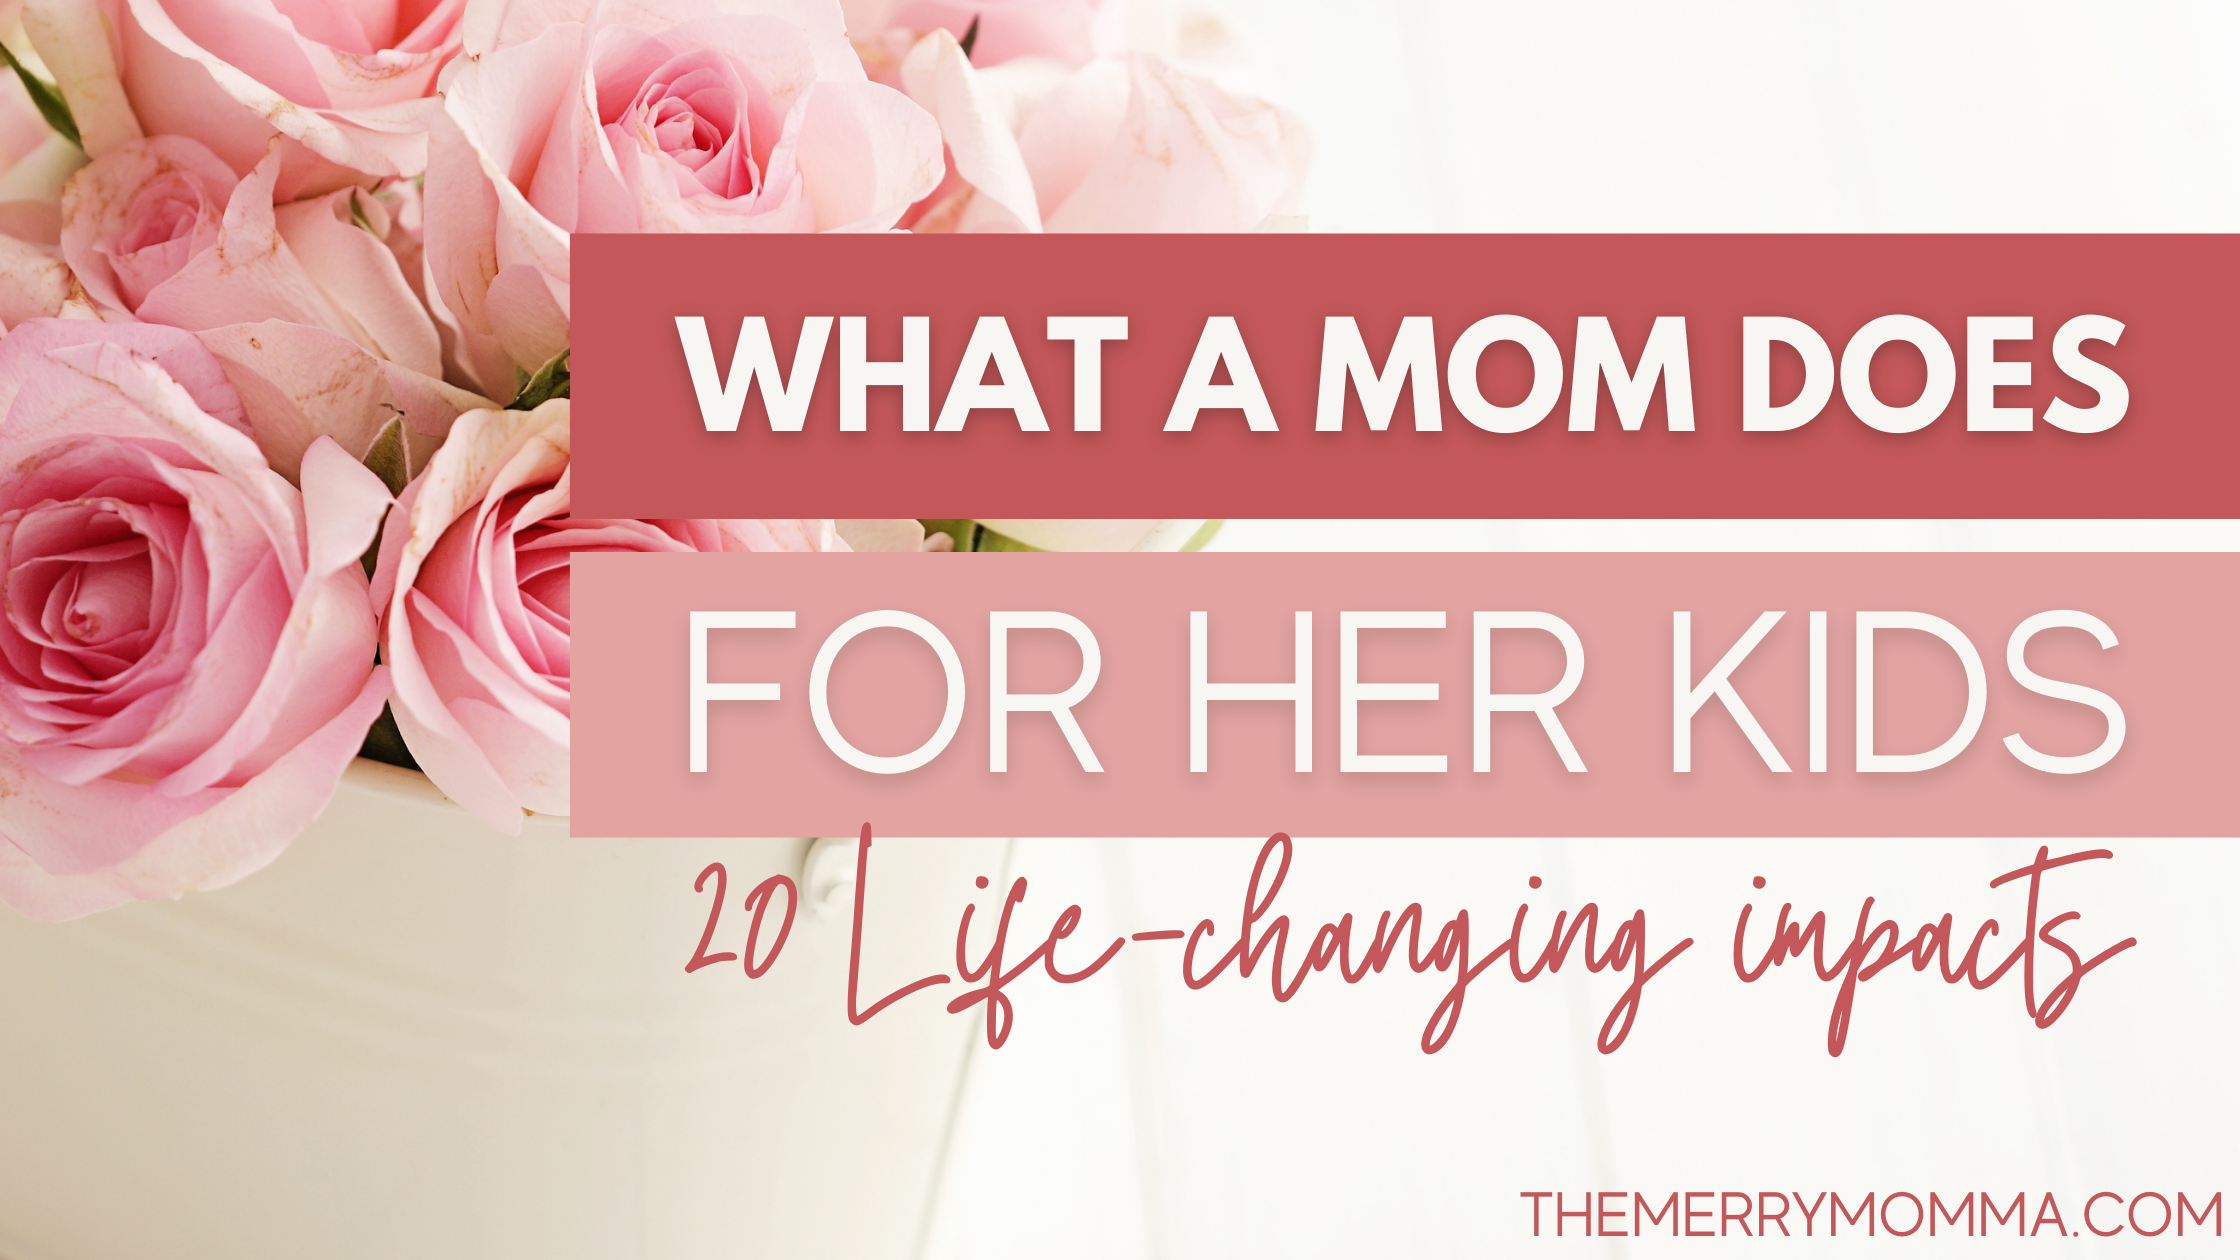 What a Mom Does For Her Kids | The Merry Momma